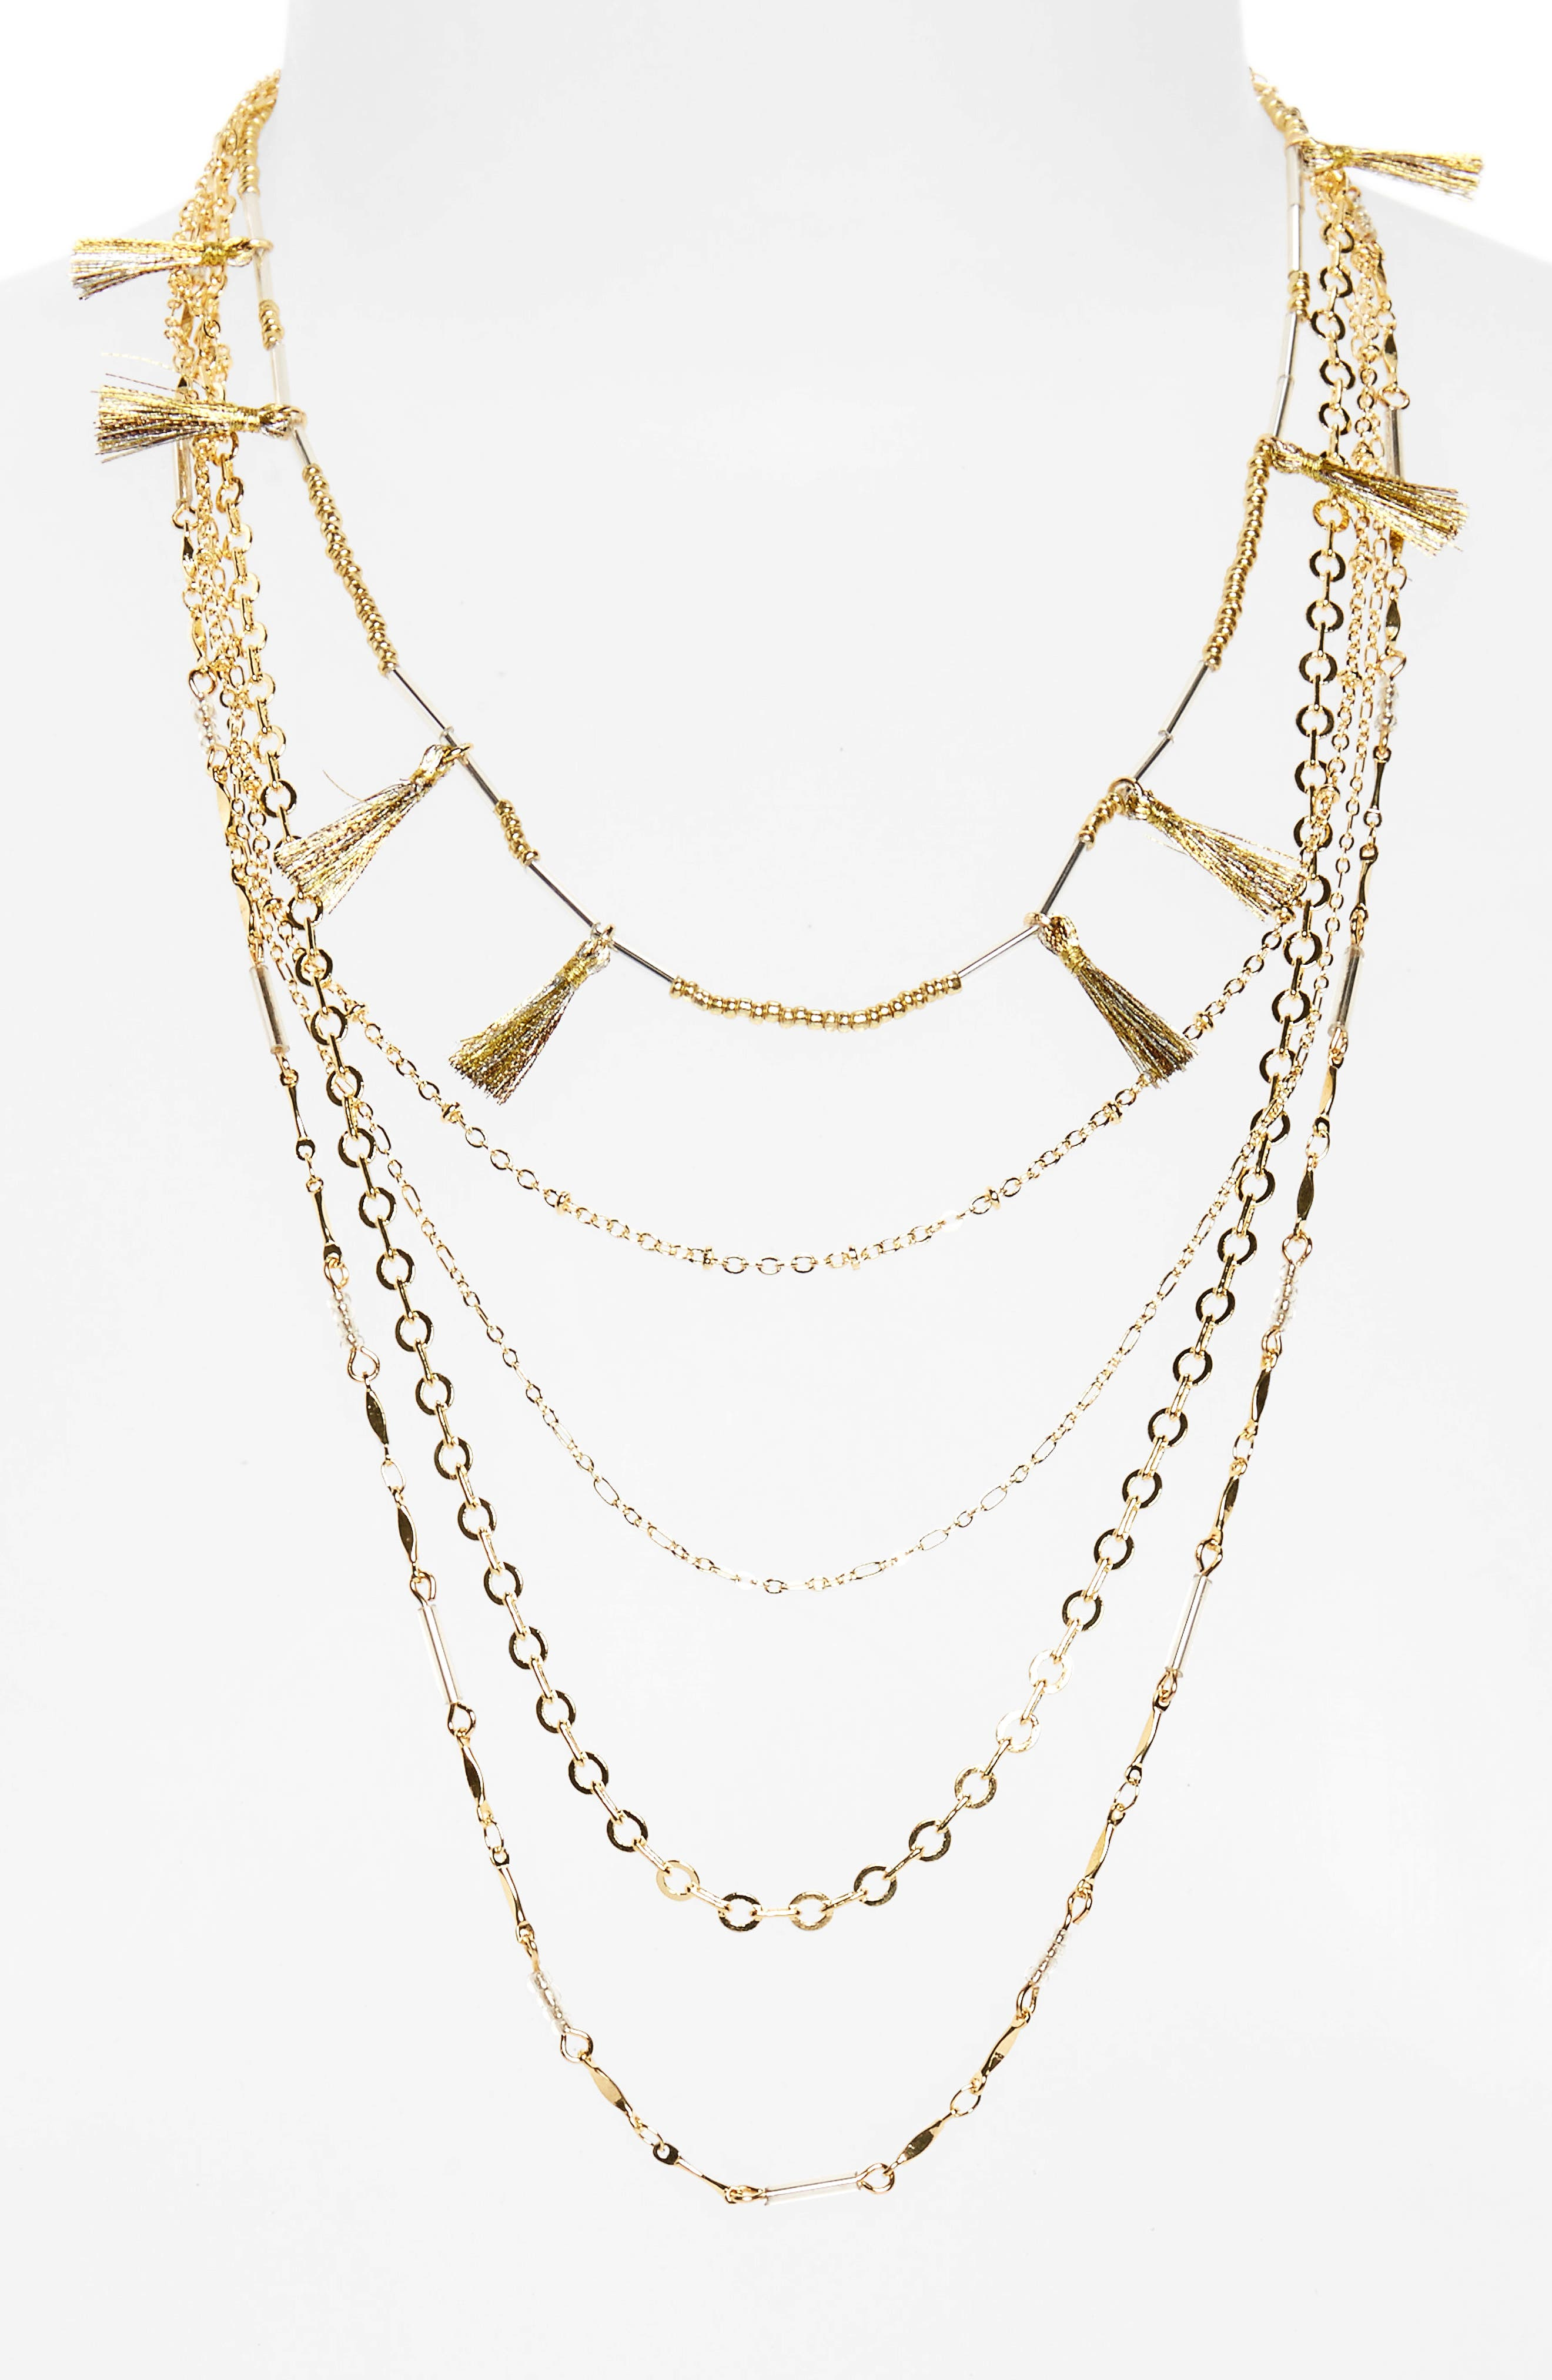 Main Image - Rebecca Minkoff Long Layered Necklace with Metallic Tassels